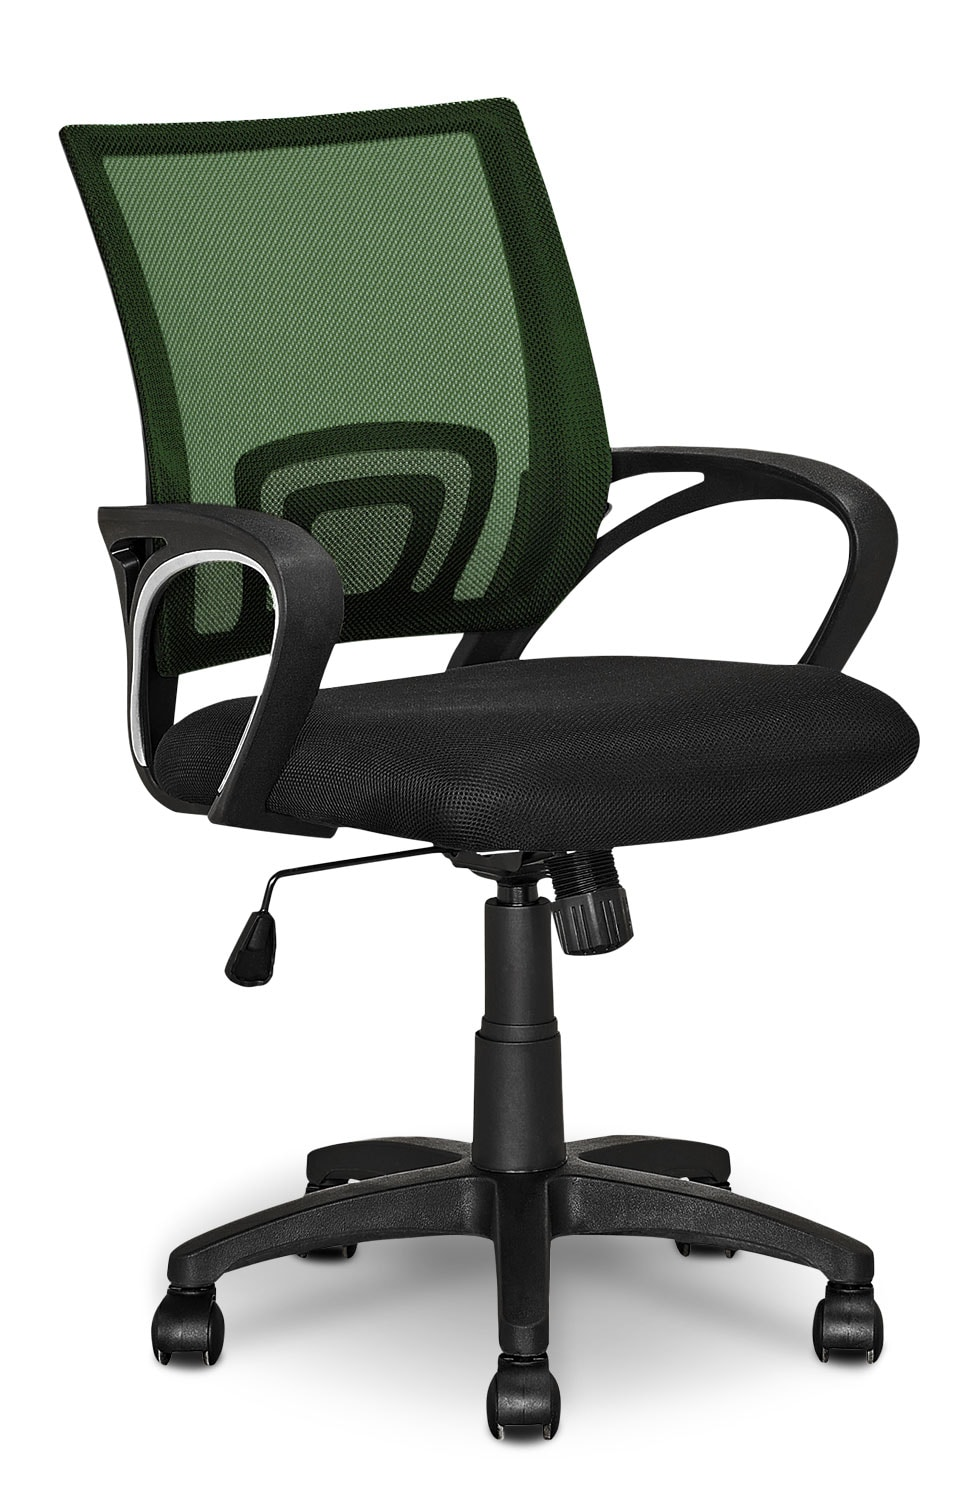 Loft Mesh Office Chair – Dark Green